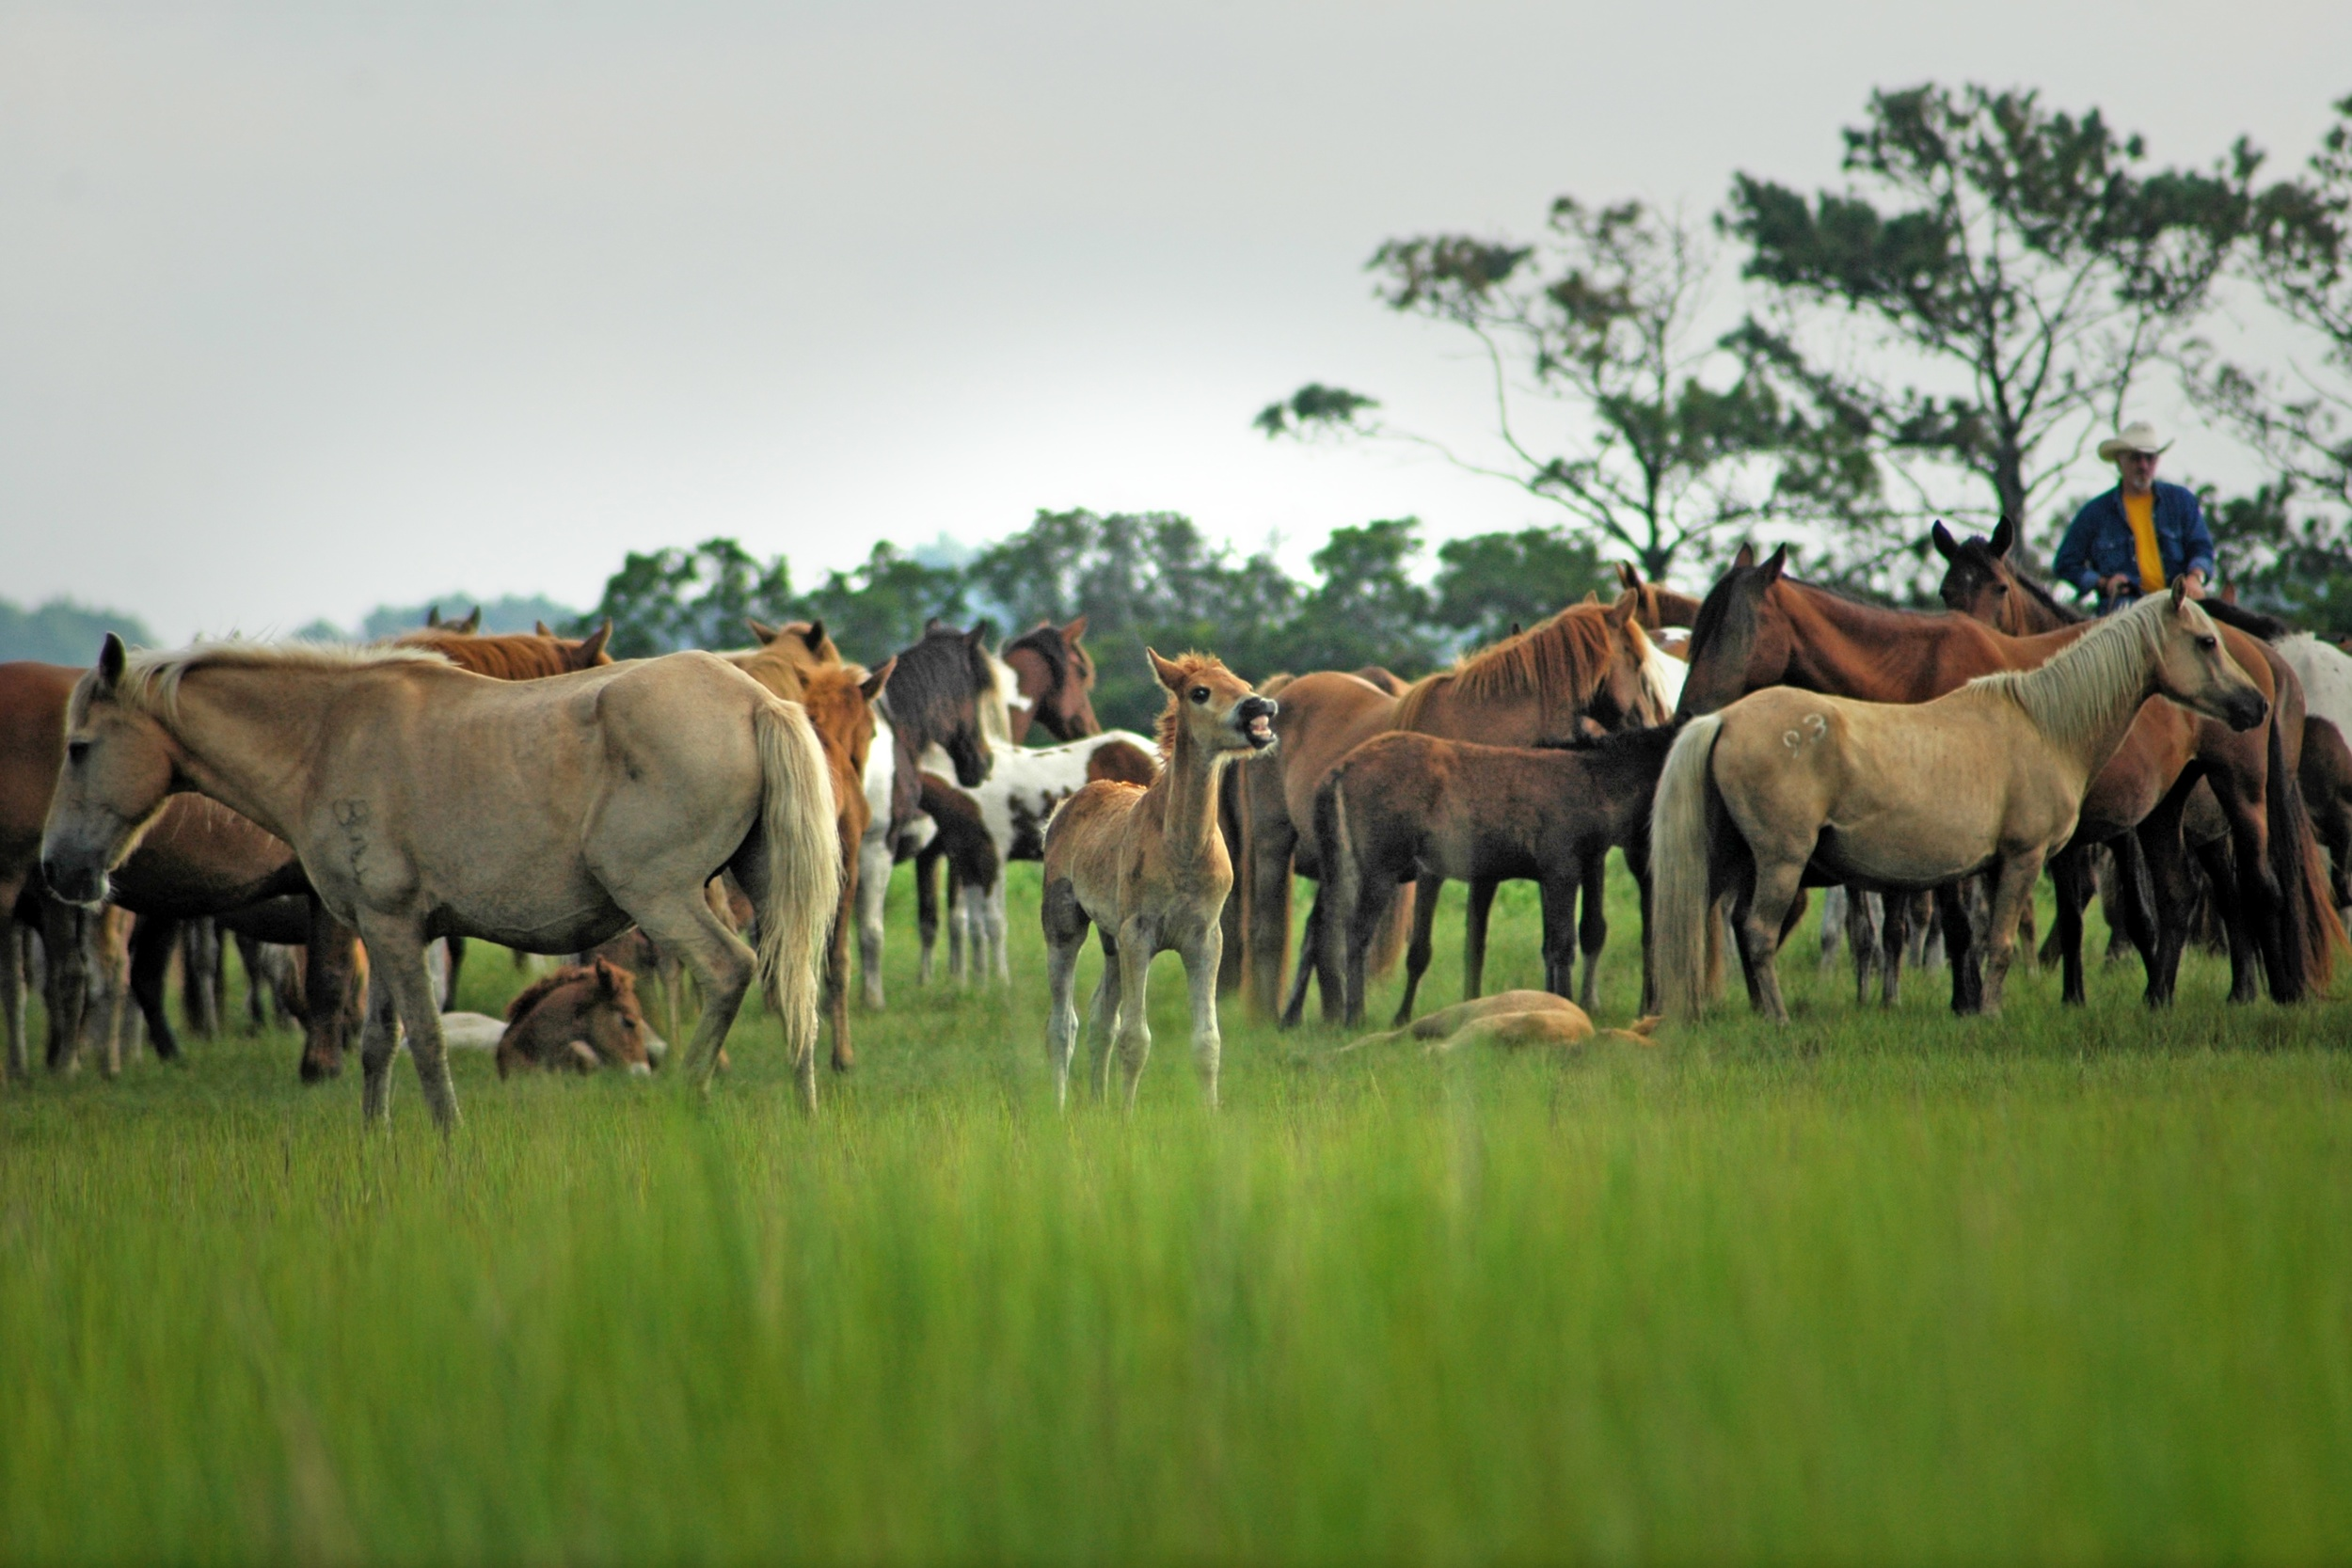 Events: Chincoteague Pony Penning